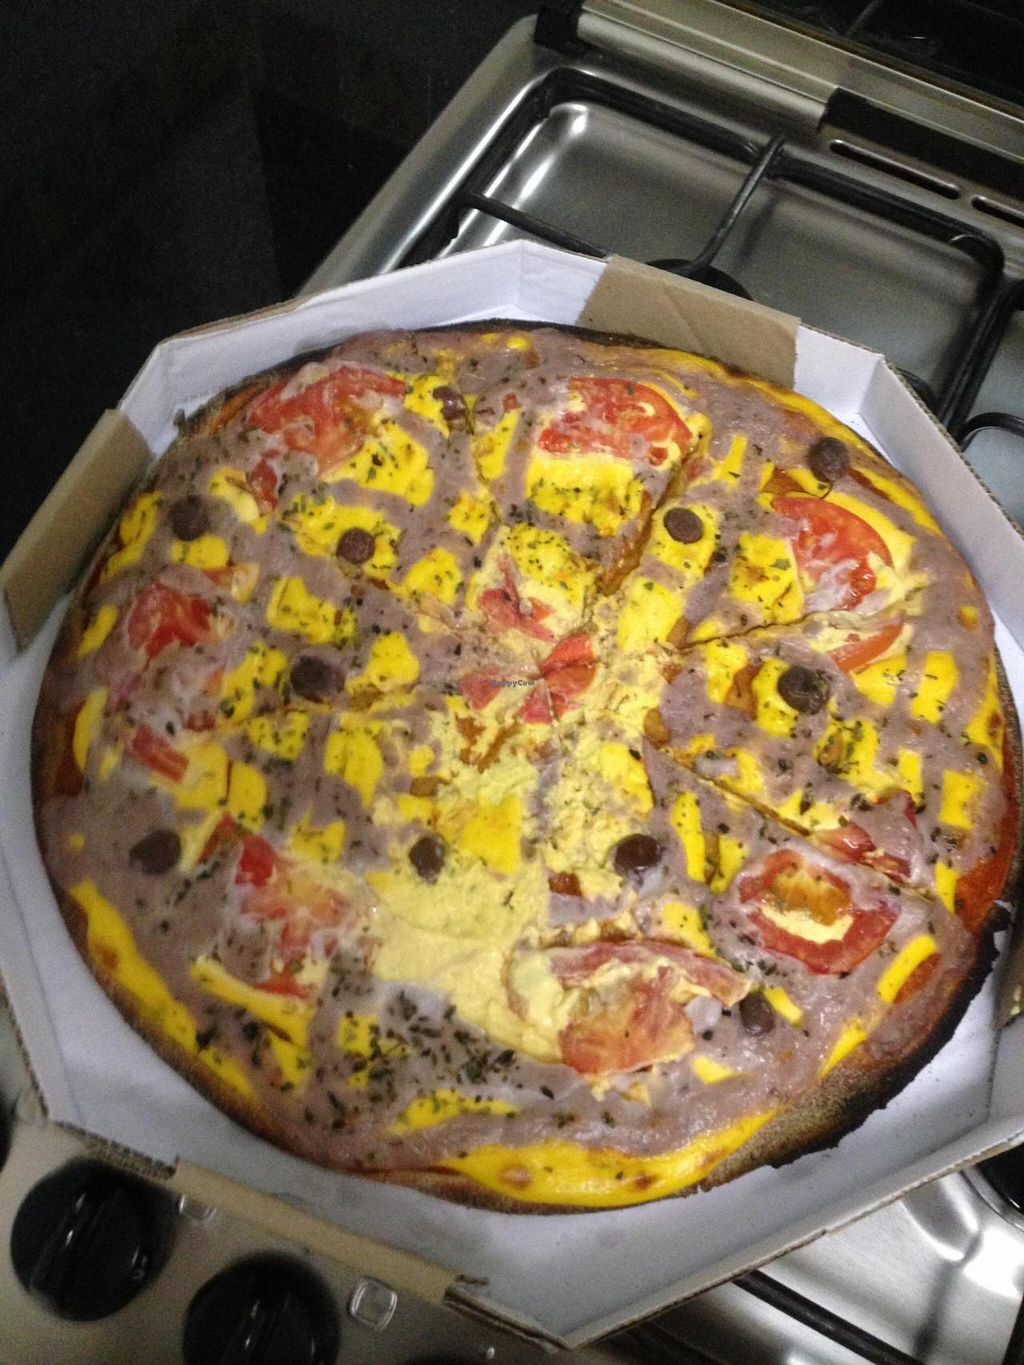 "Photo of Lar Vegetariano Vegan  by <a href=""/members/profile/Paolla"">Paolla</a> <br/>''Chilena''pizza, from the delivery service <br/> October 3, 2014  - <a href='/contact/abuse/image/44899/82053'>Report</a>"